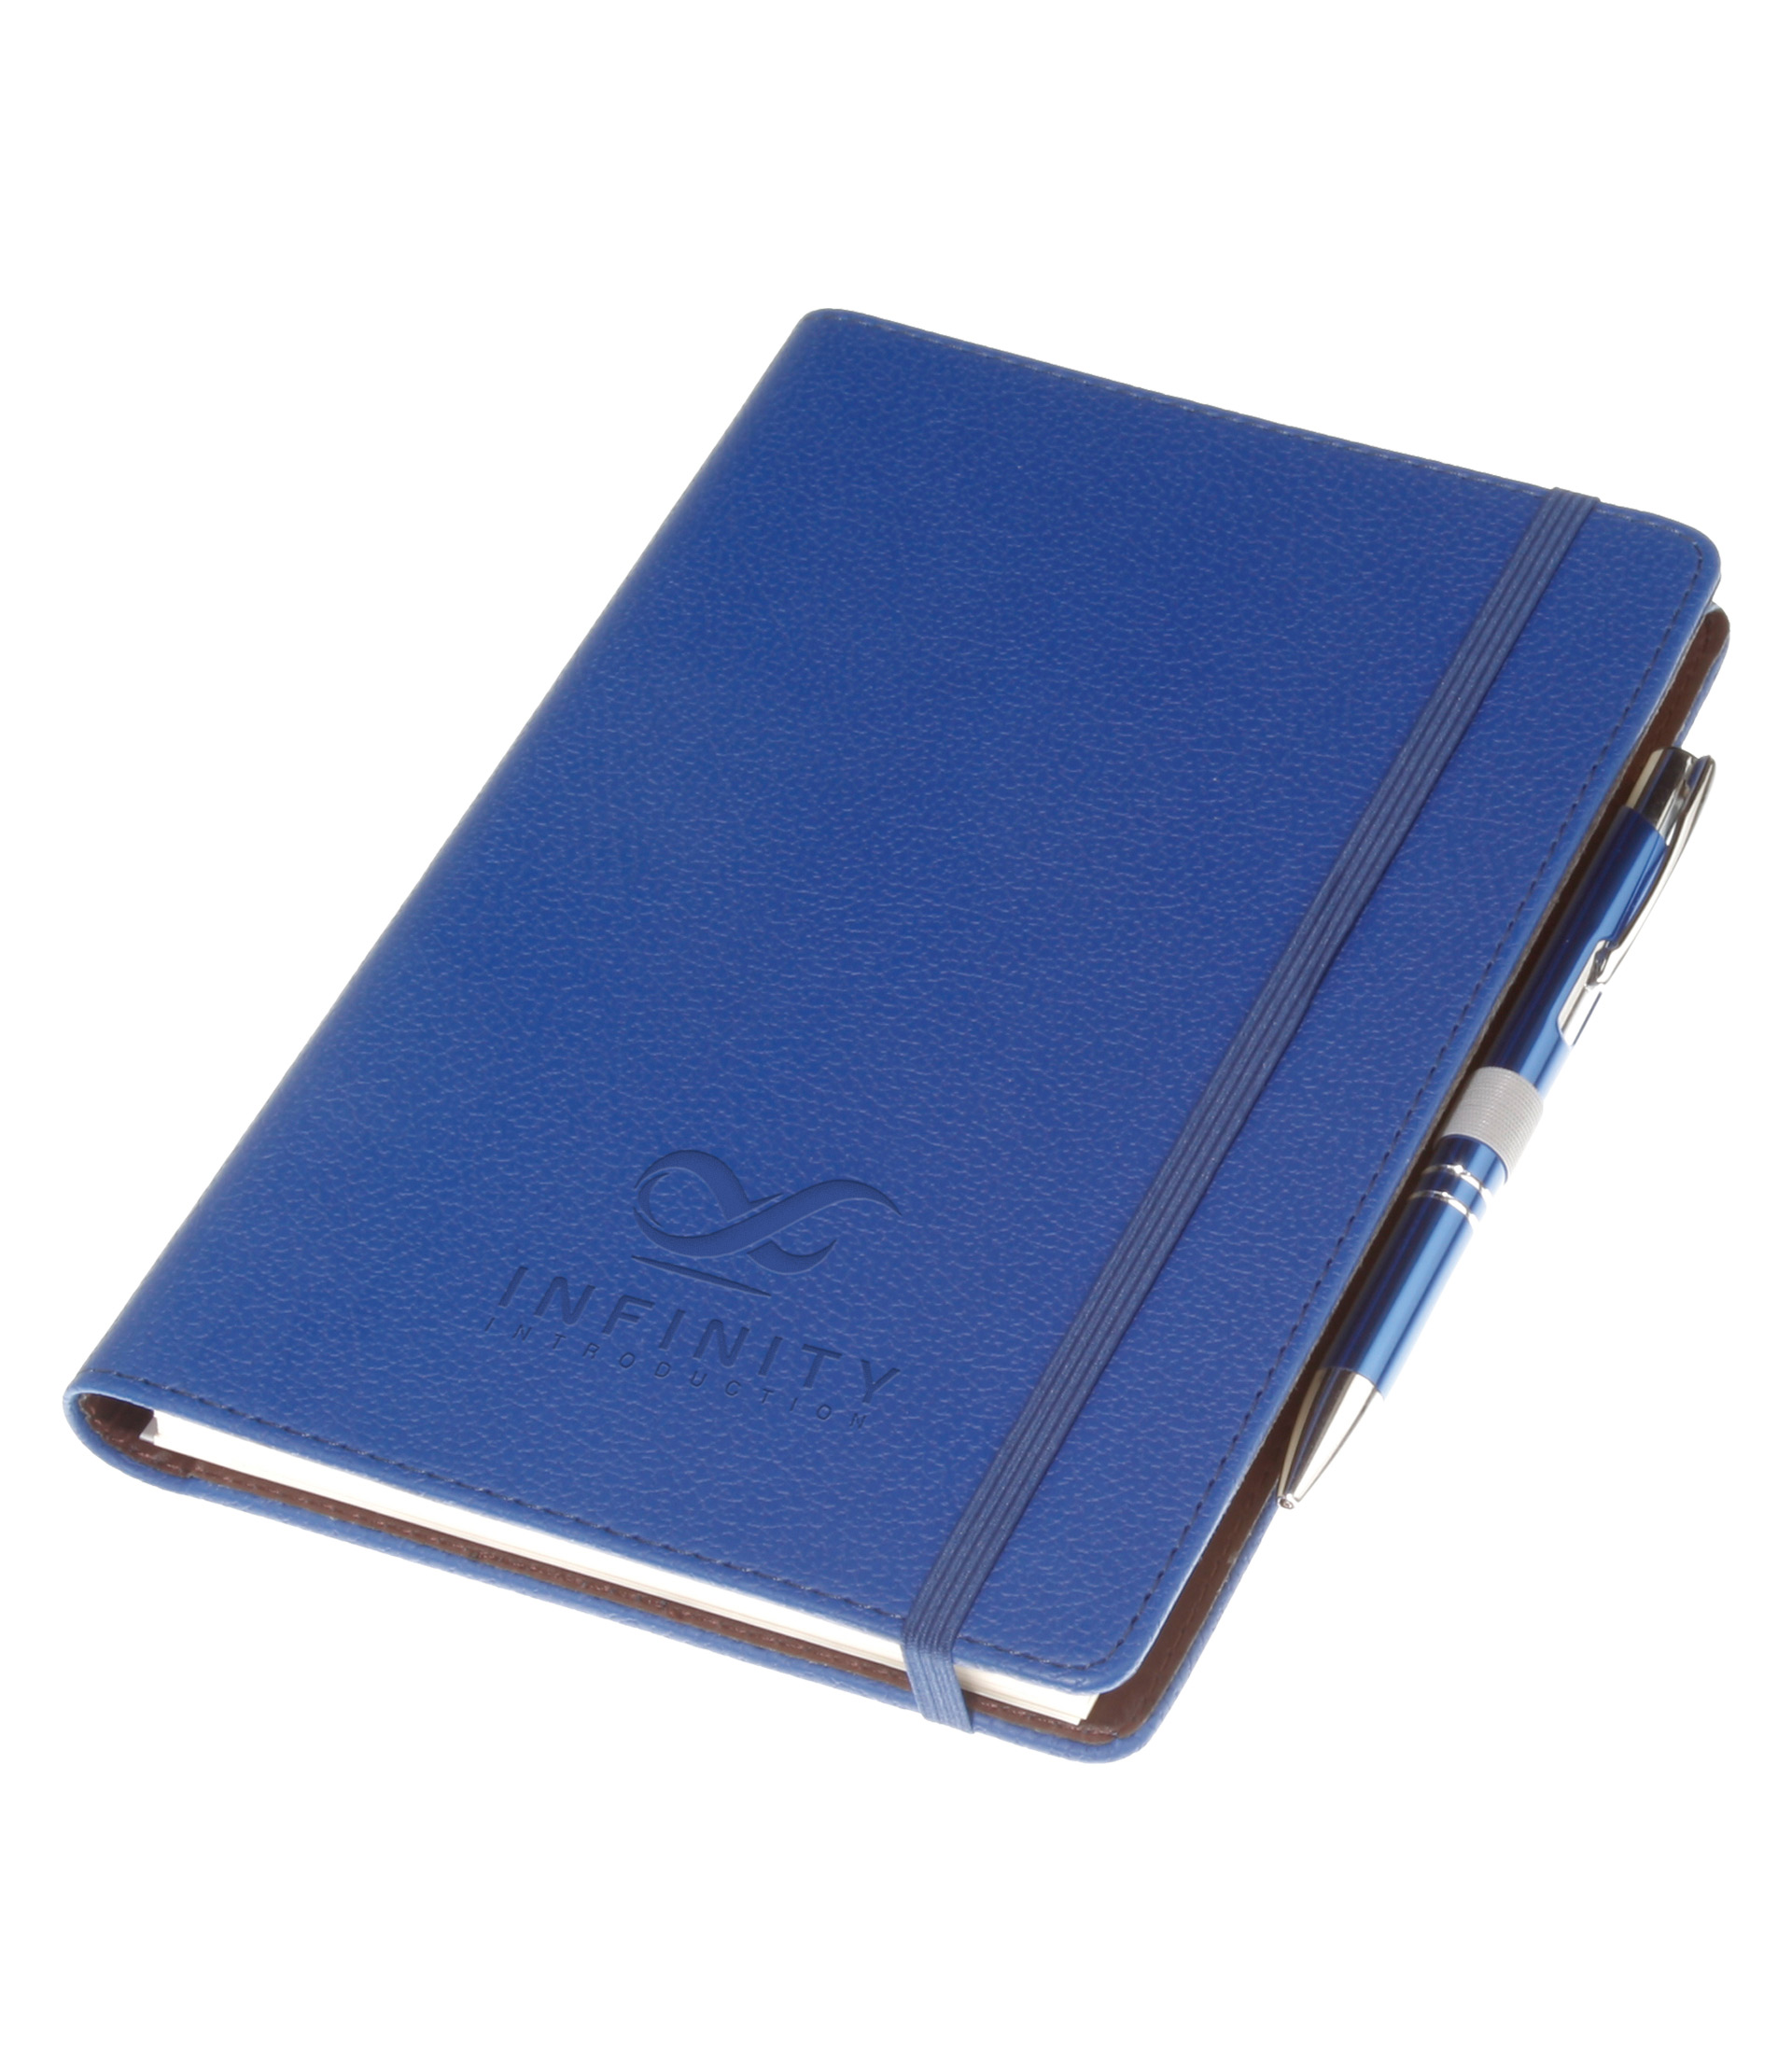 HIDDEN SPIRALLY THERMO LEATHER NOTEBOOK